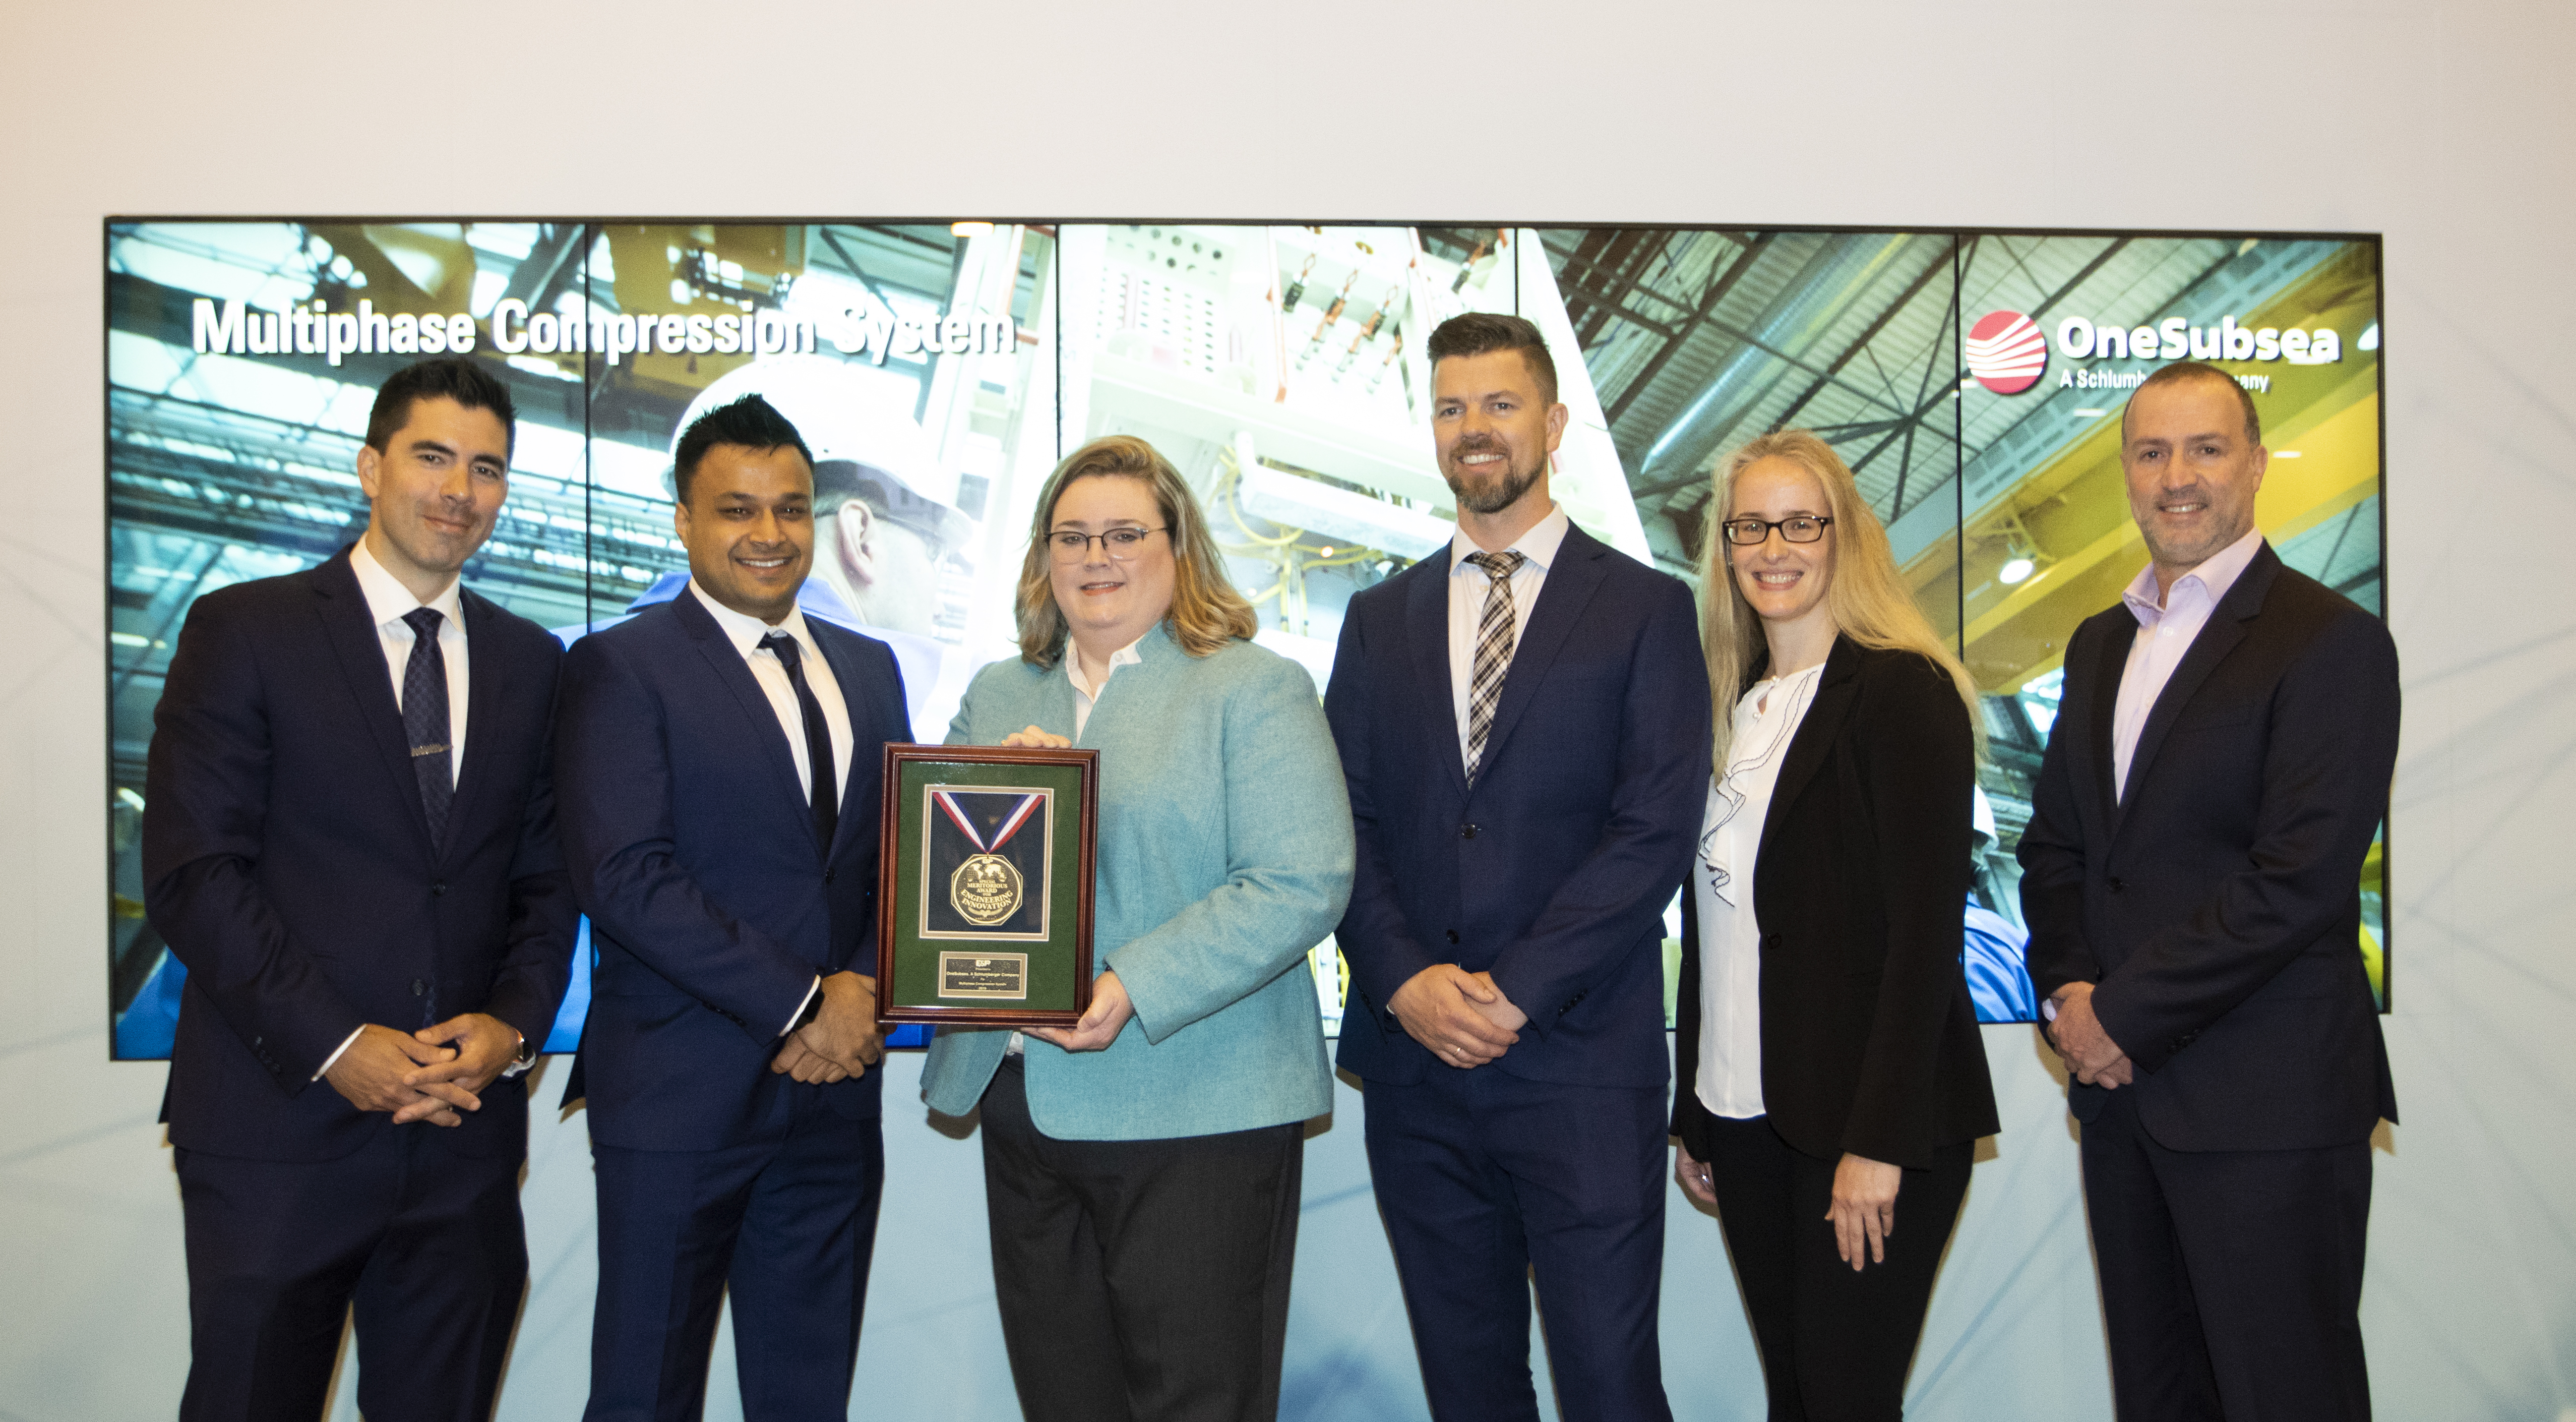 The Multiphase Compression System from OneSubsea, a Schlumberger company, won in the subsea systems category. E&P's Jennifer Presley (third from the left) presented the award to (from left to right) Mads Hjelmeland, Akshay Kalia, Hans Fredrik Kjellnes, Lucile Turpin and Ben Charbit.